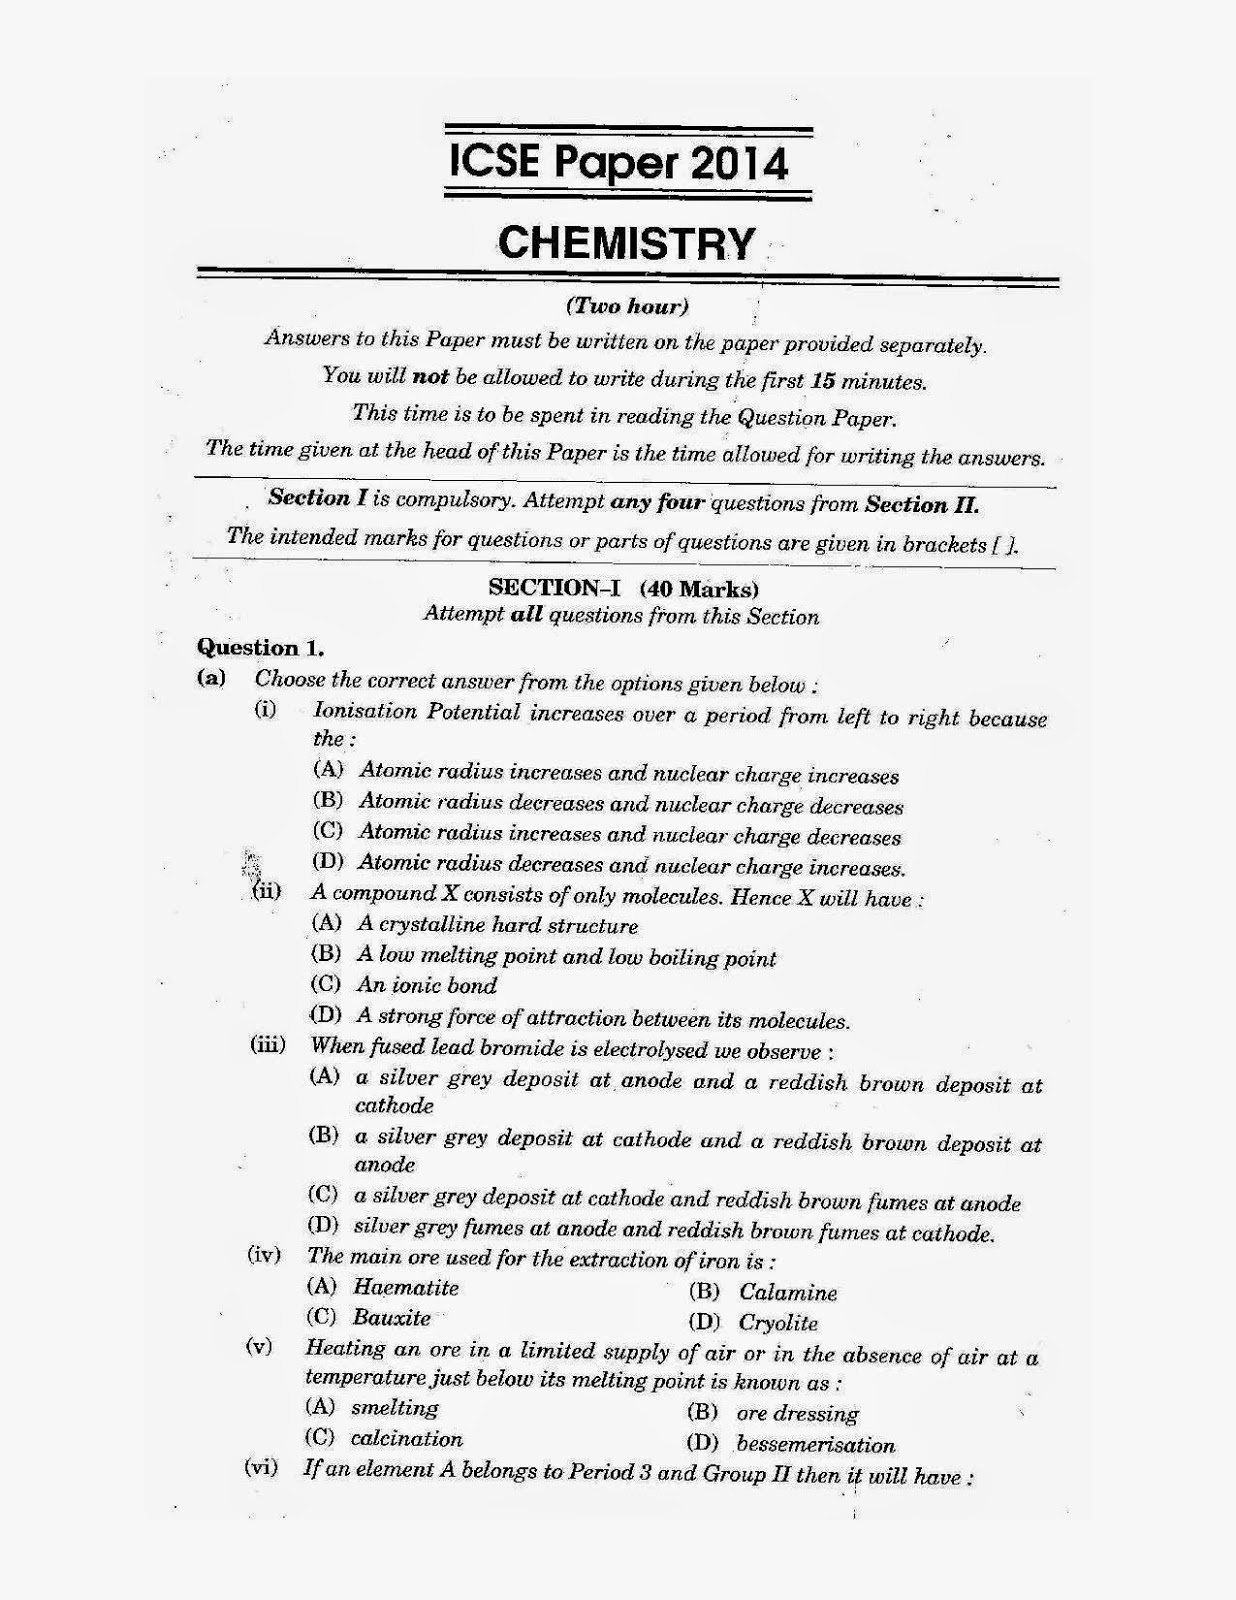 icse class 10th chemistry solved question paper 2014